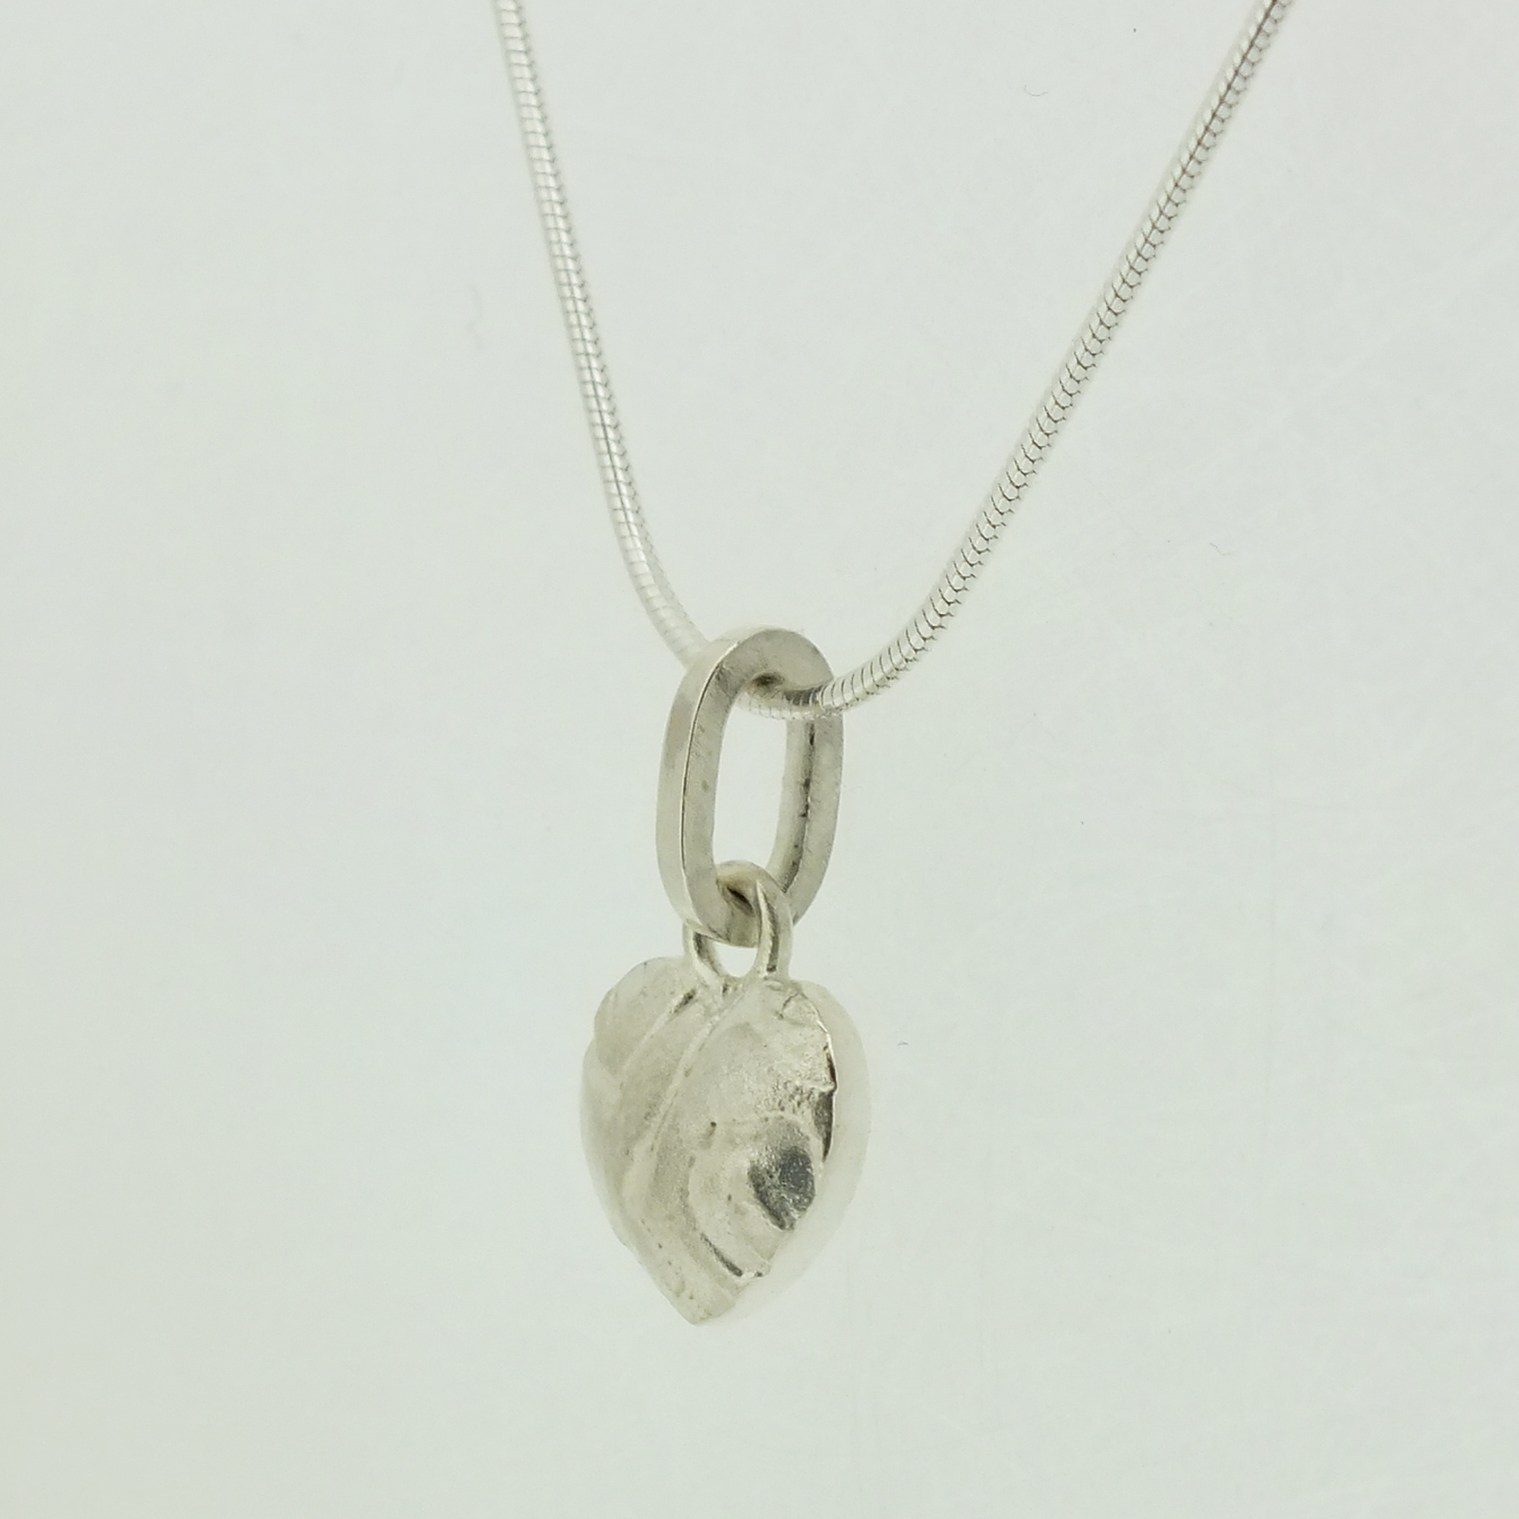 Small Heart Pendant in textured sterling silver